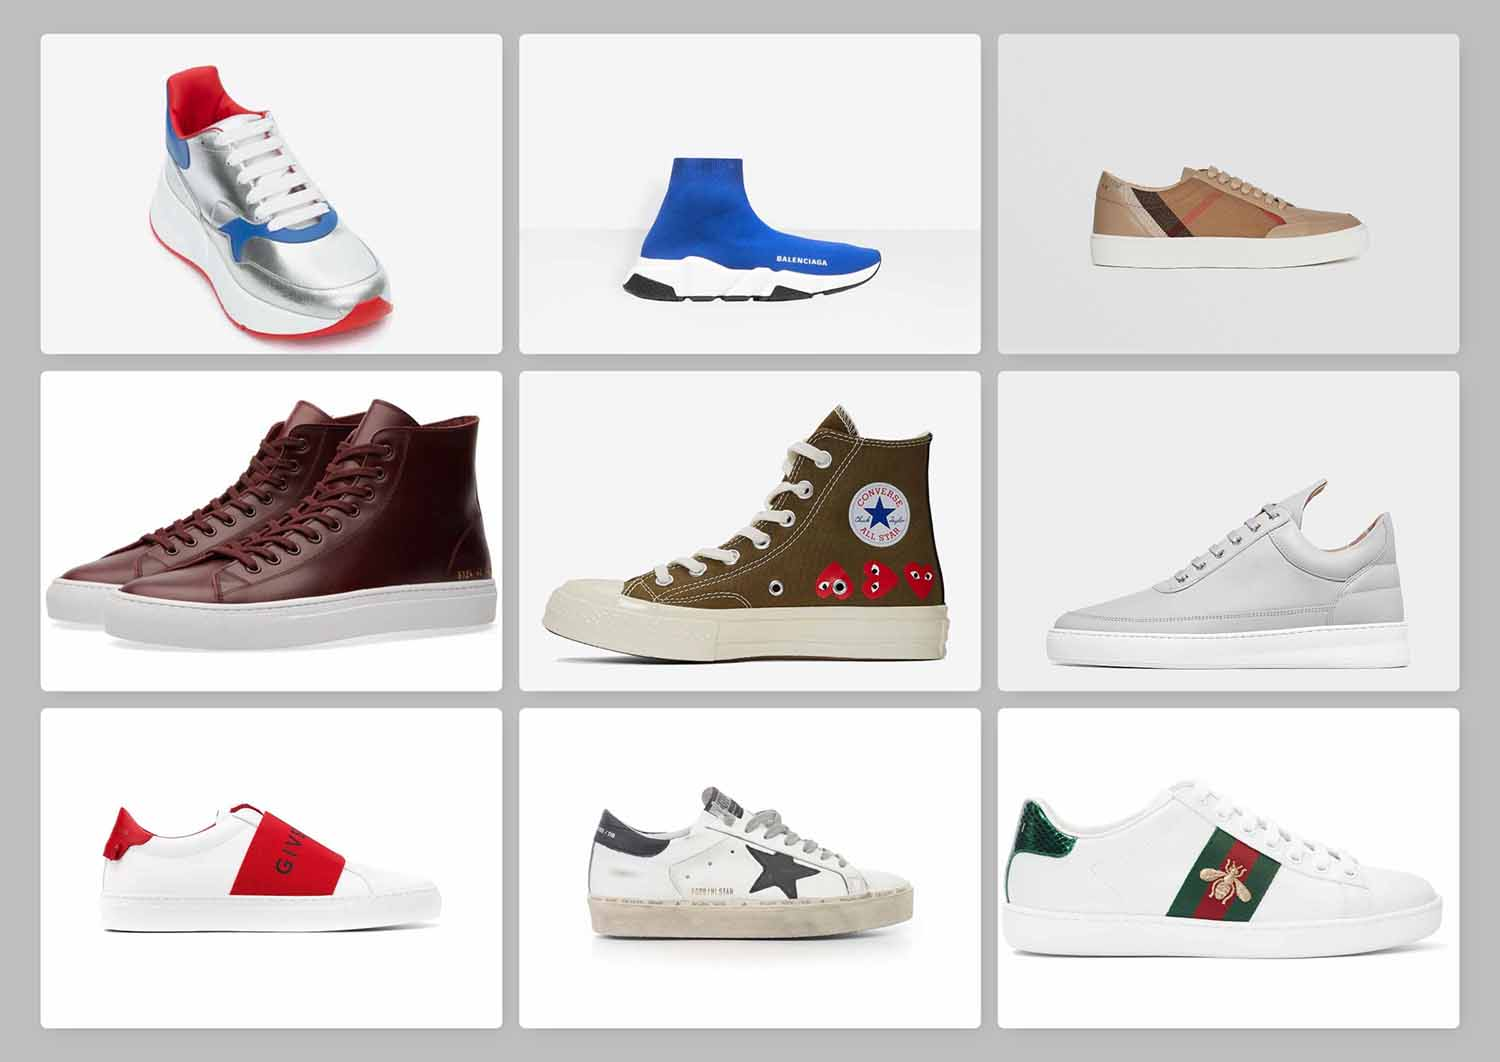 9 Designer Sneakers That are Totally Worth Their Money